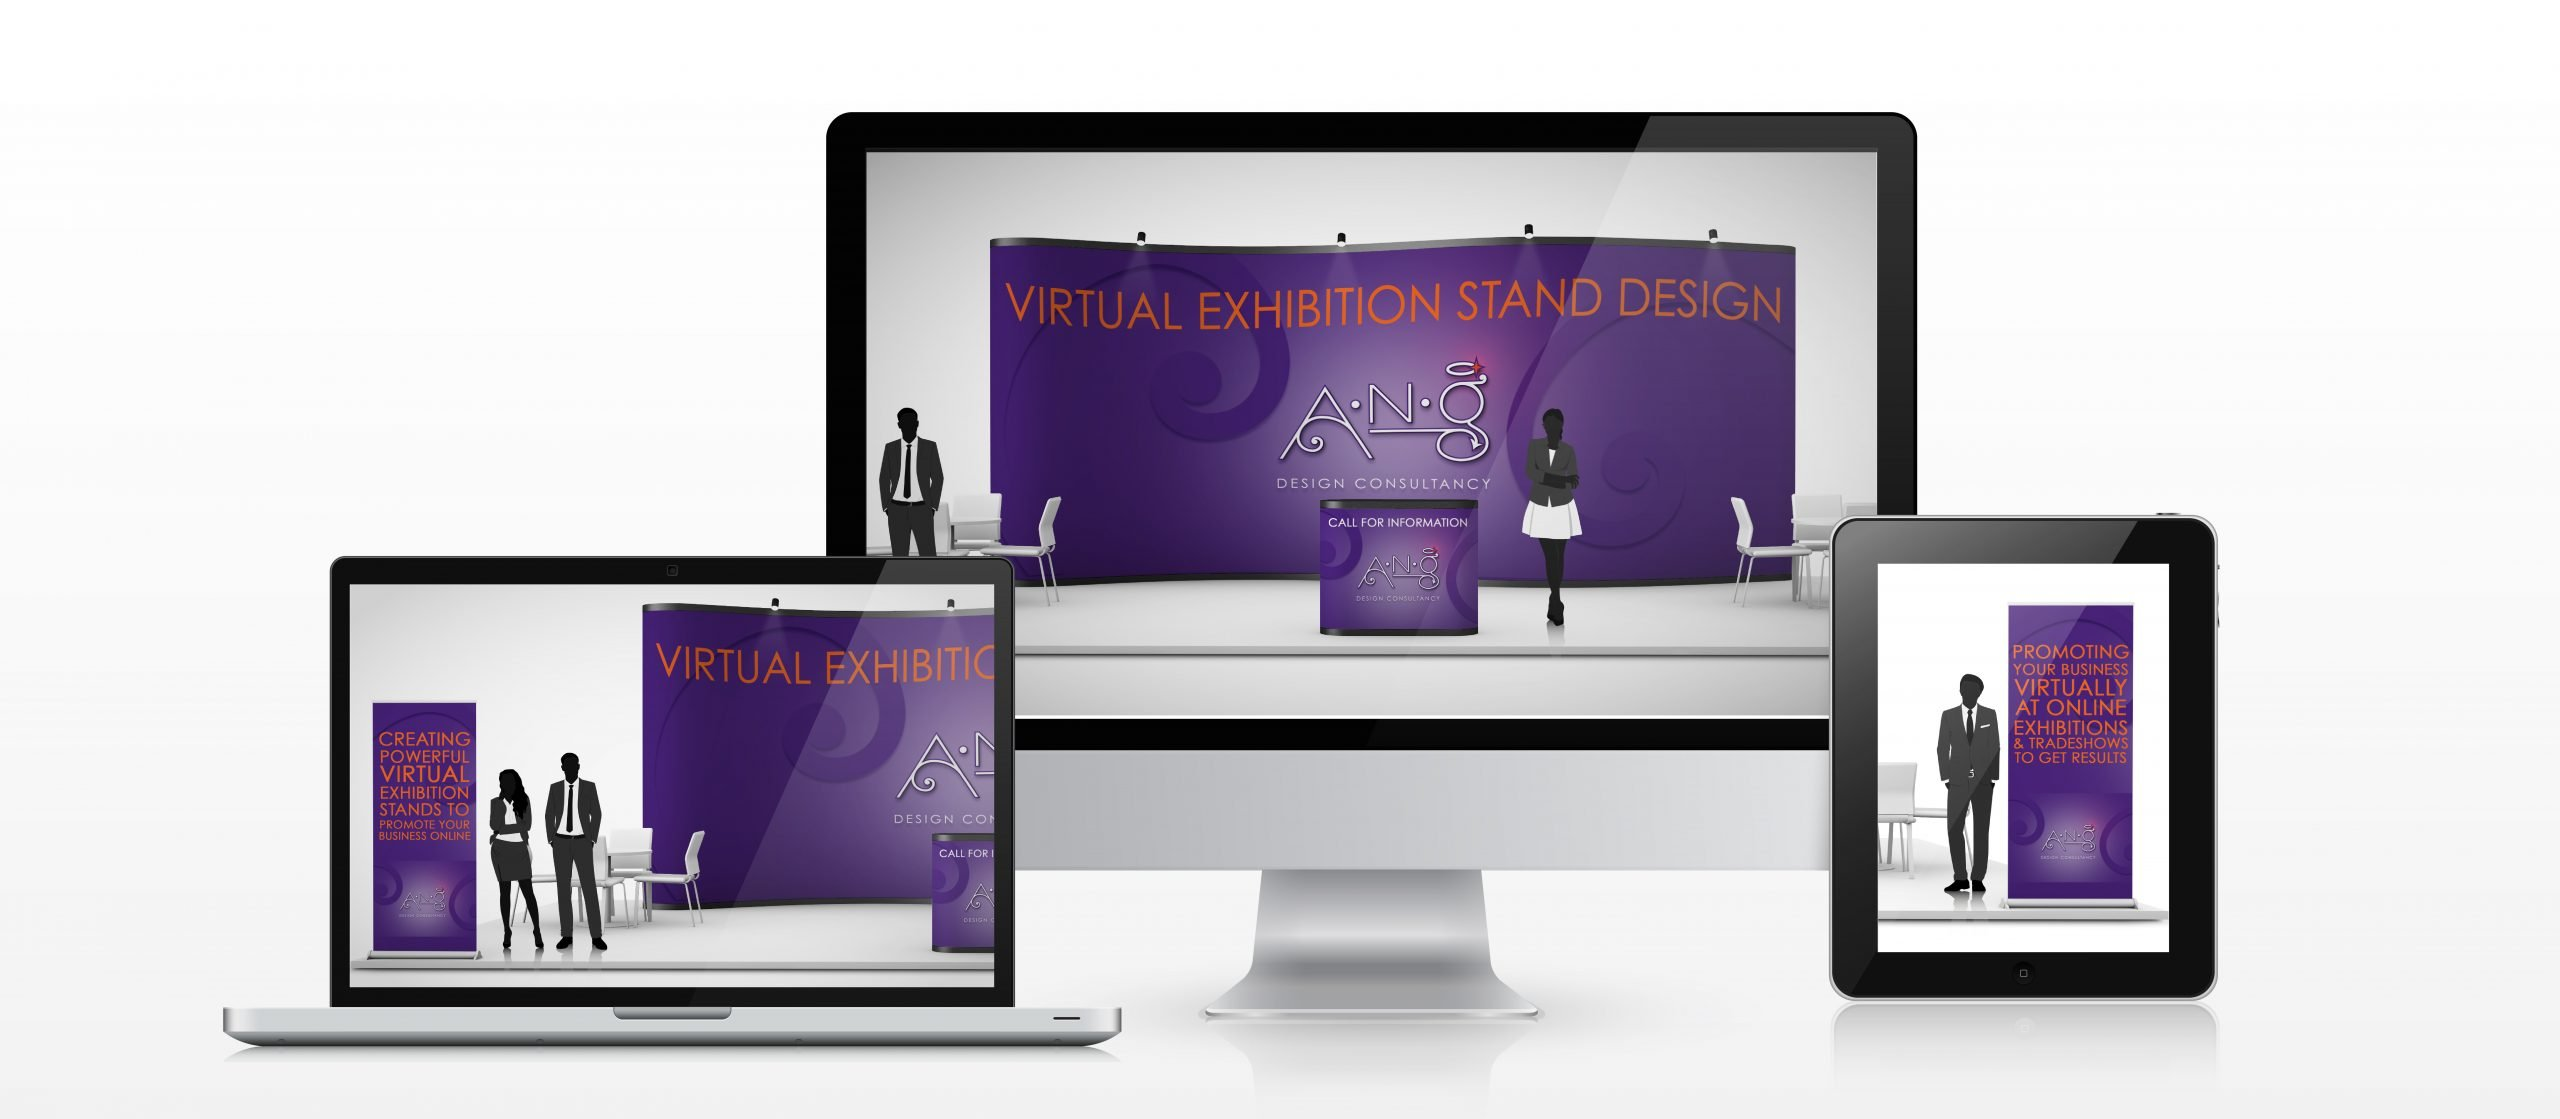 virtual exhibition stand design